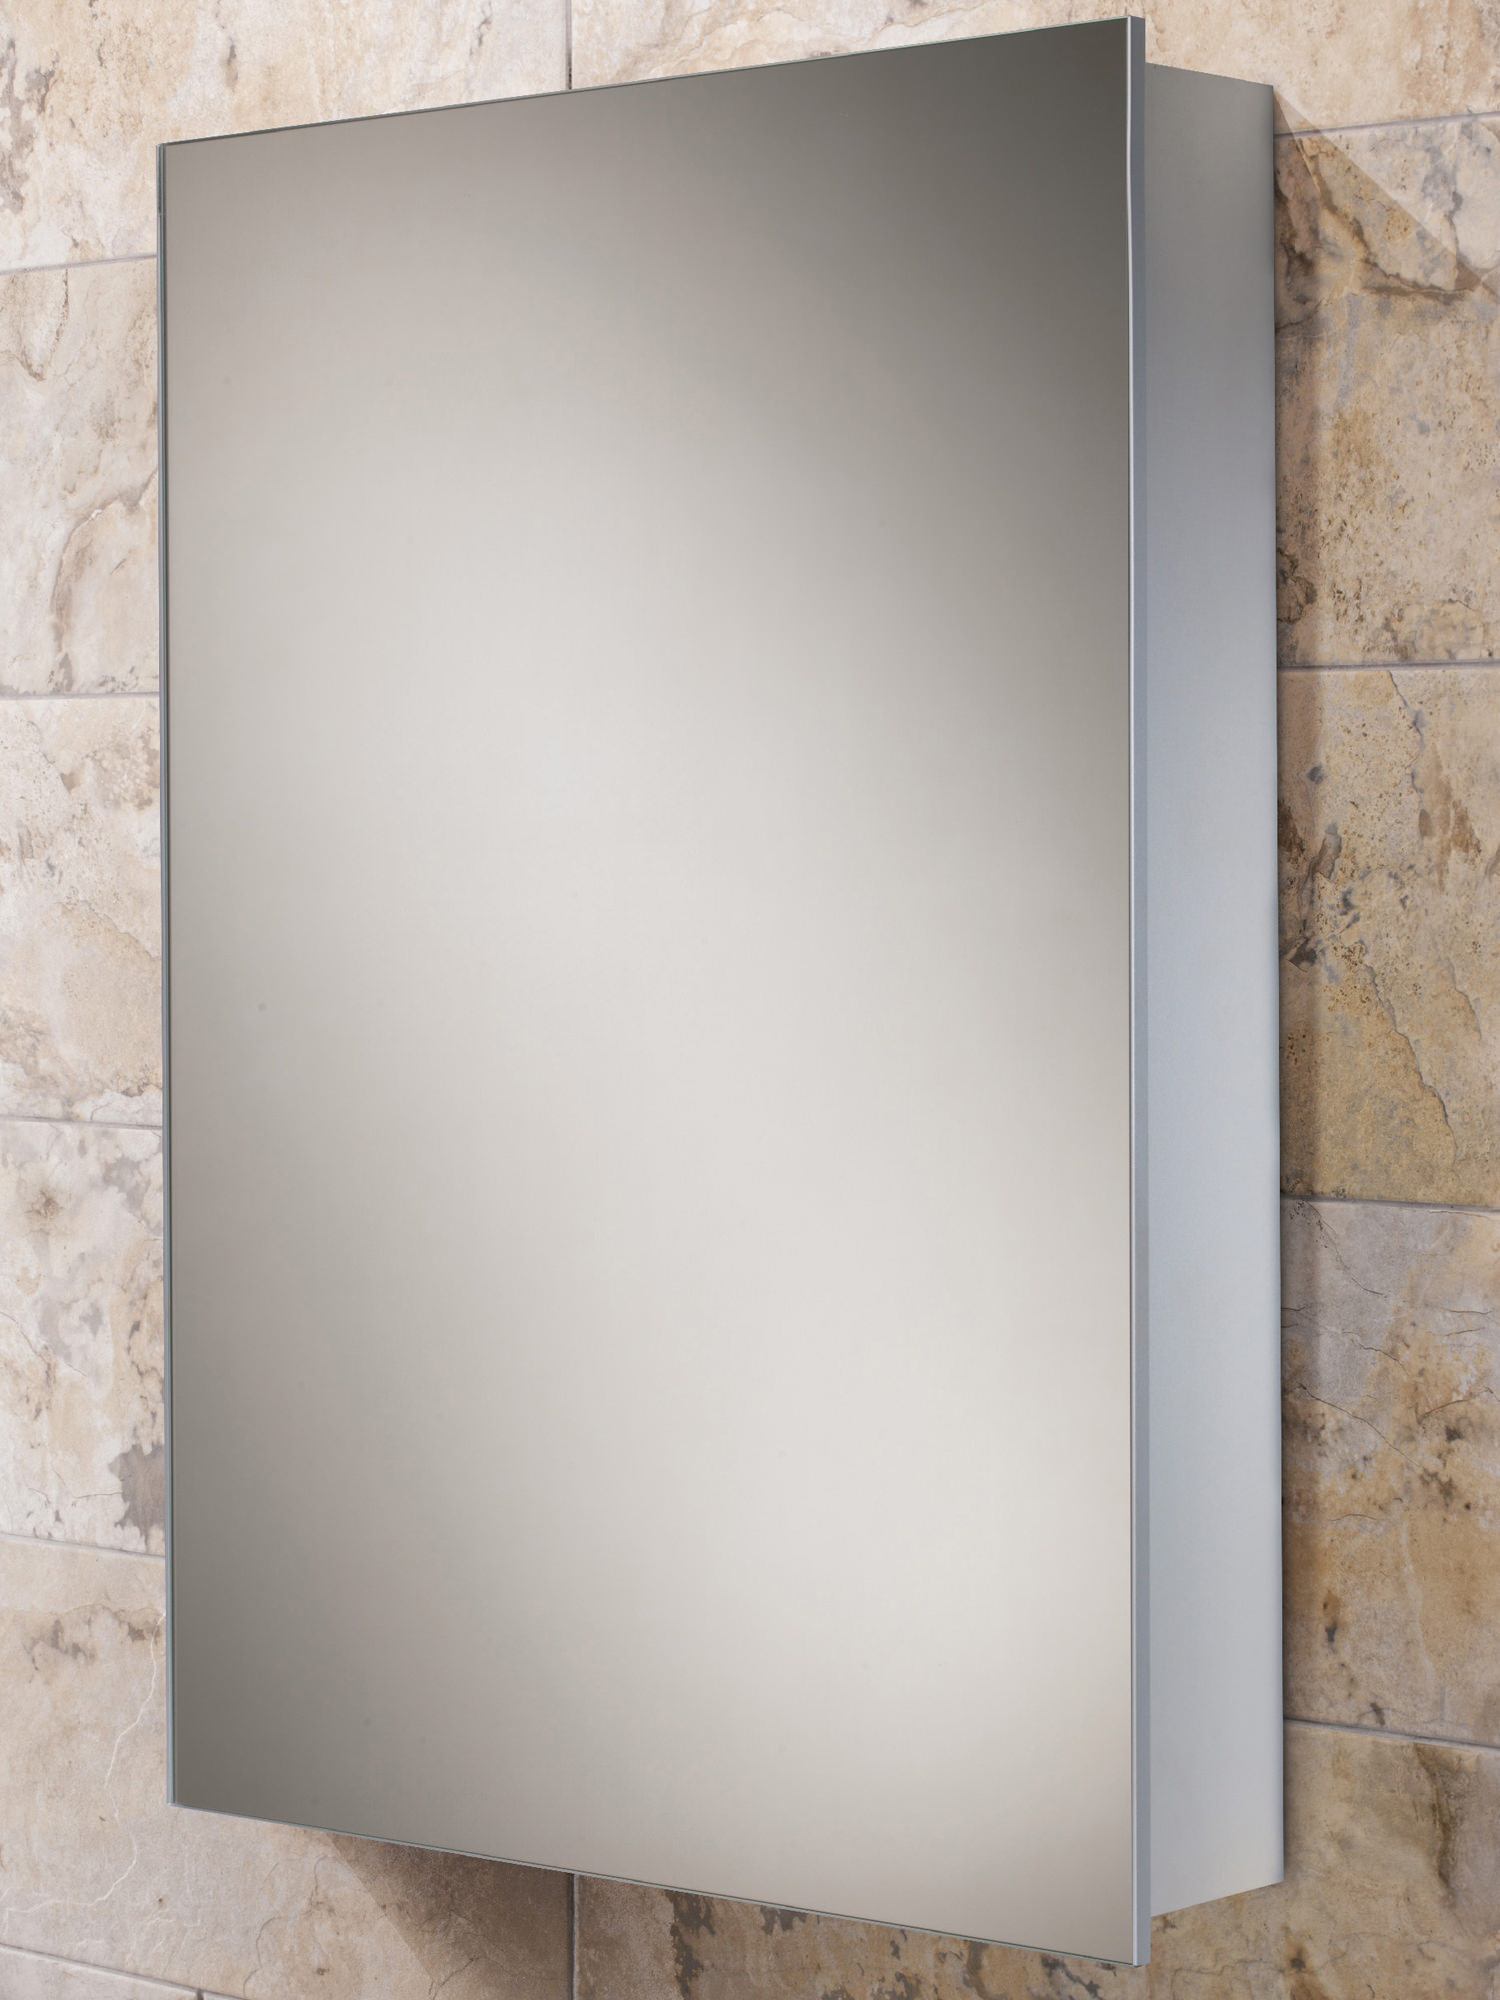 Hib kore slim line aluminium mirror cabinet 400 x 600mm for Slim mirrored bathroom cabinet